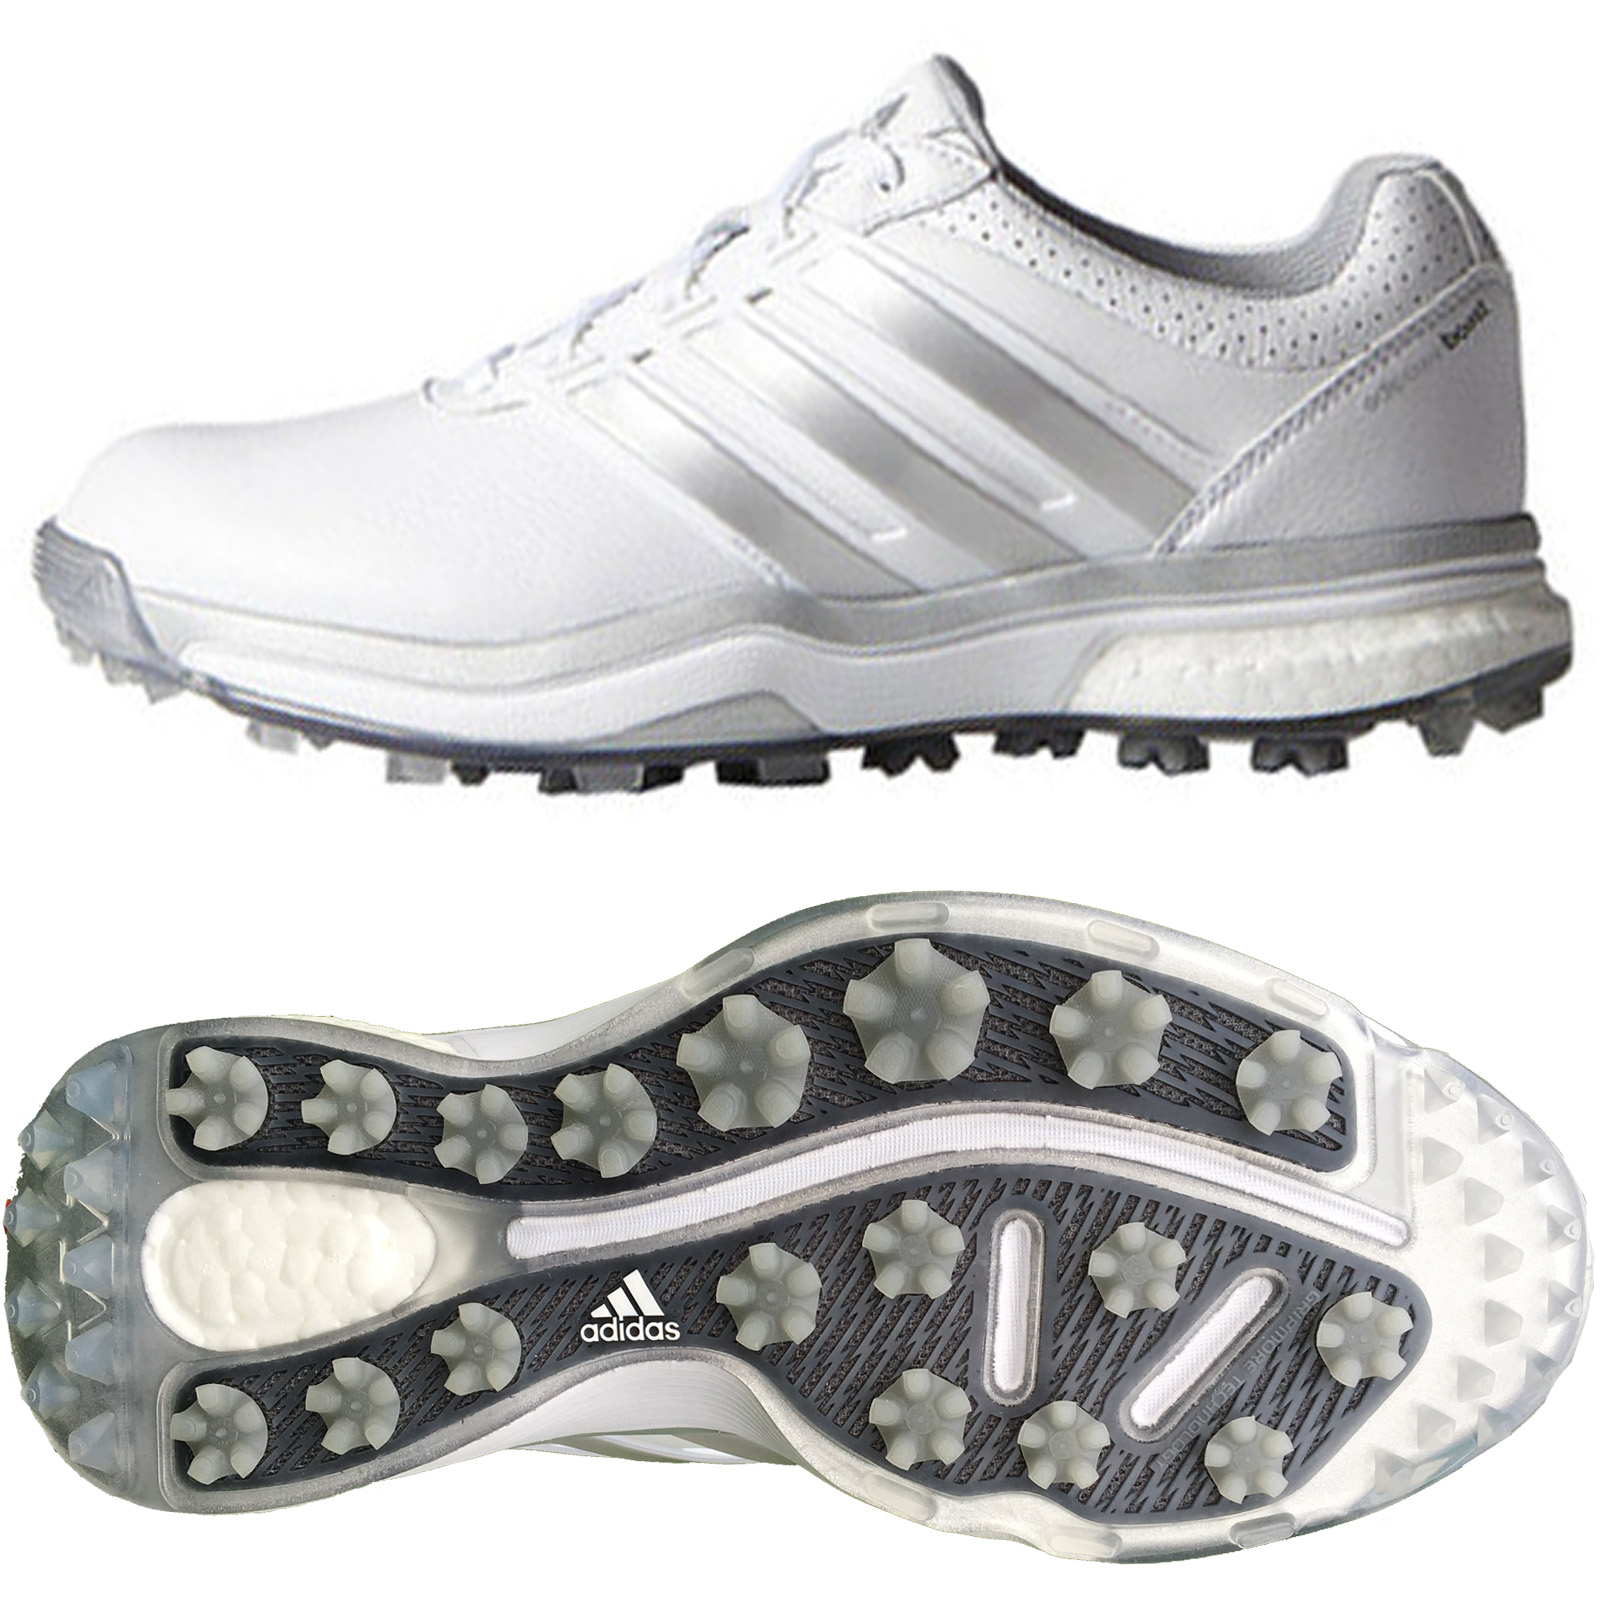 2.628 adidas clearance signore adipower donne adipower signore aumentare ii - golf dbb01b